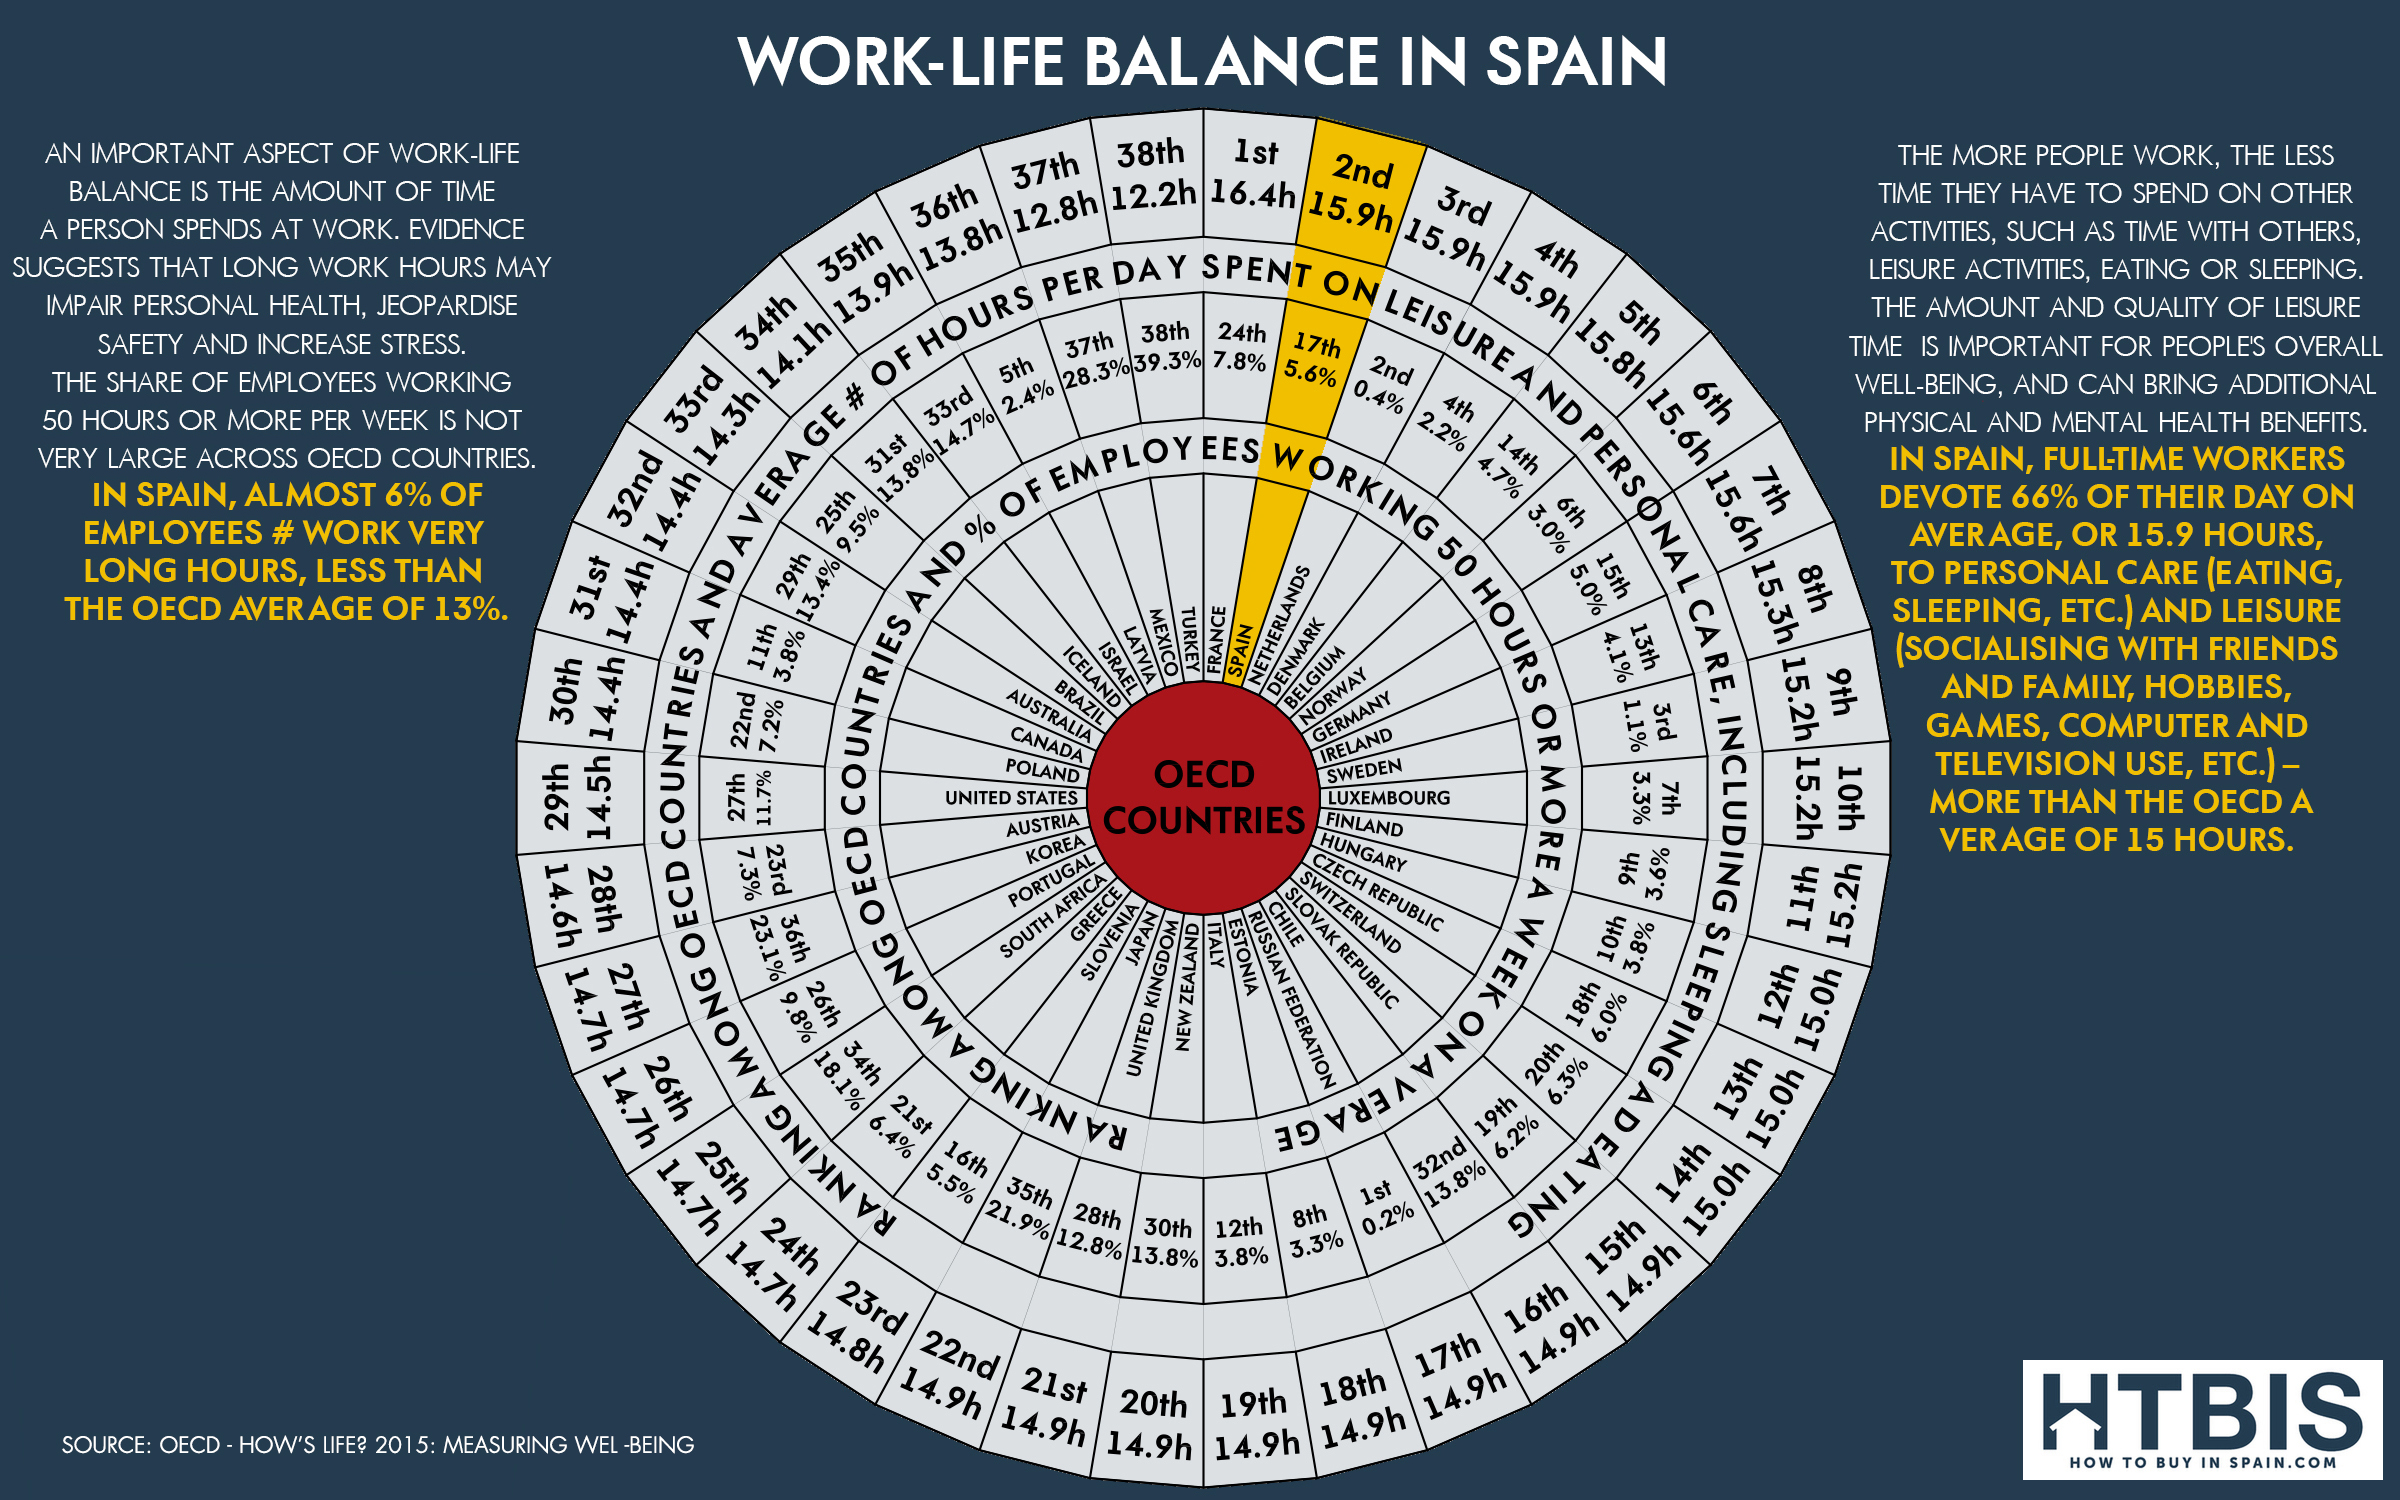 Infographic worklife balance Spain vs OECD countries